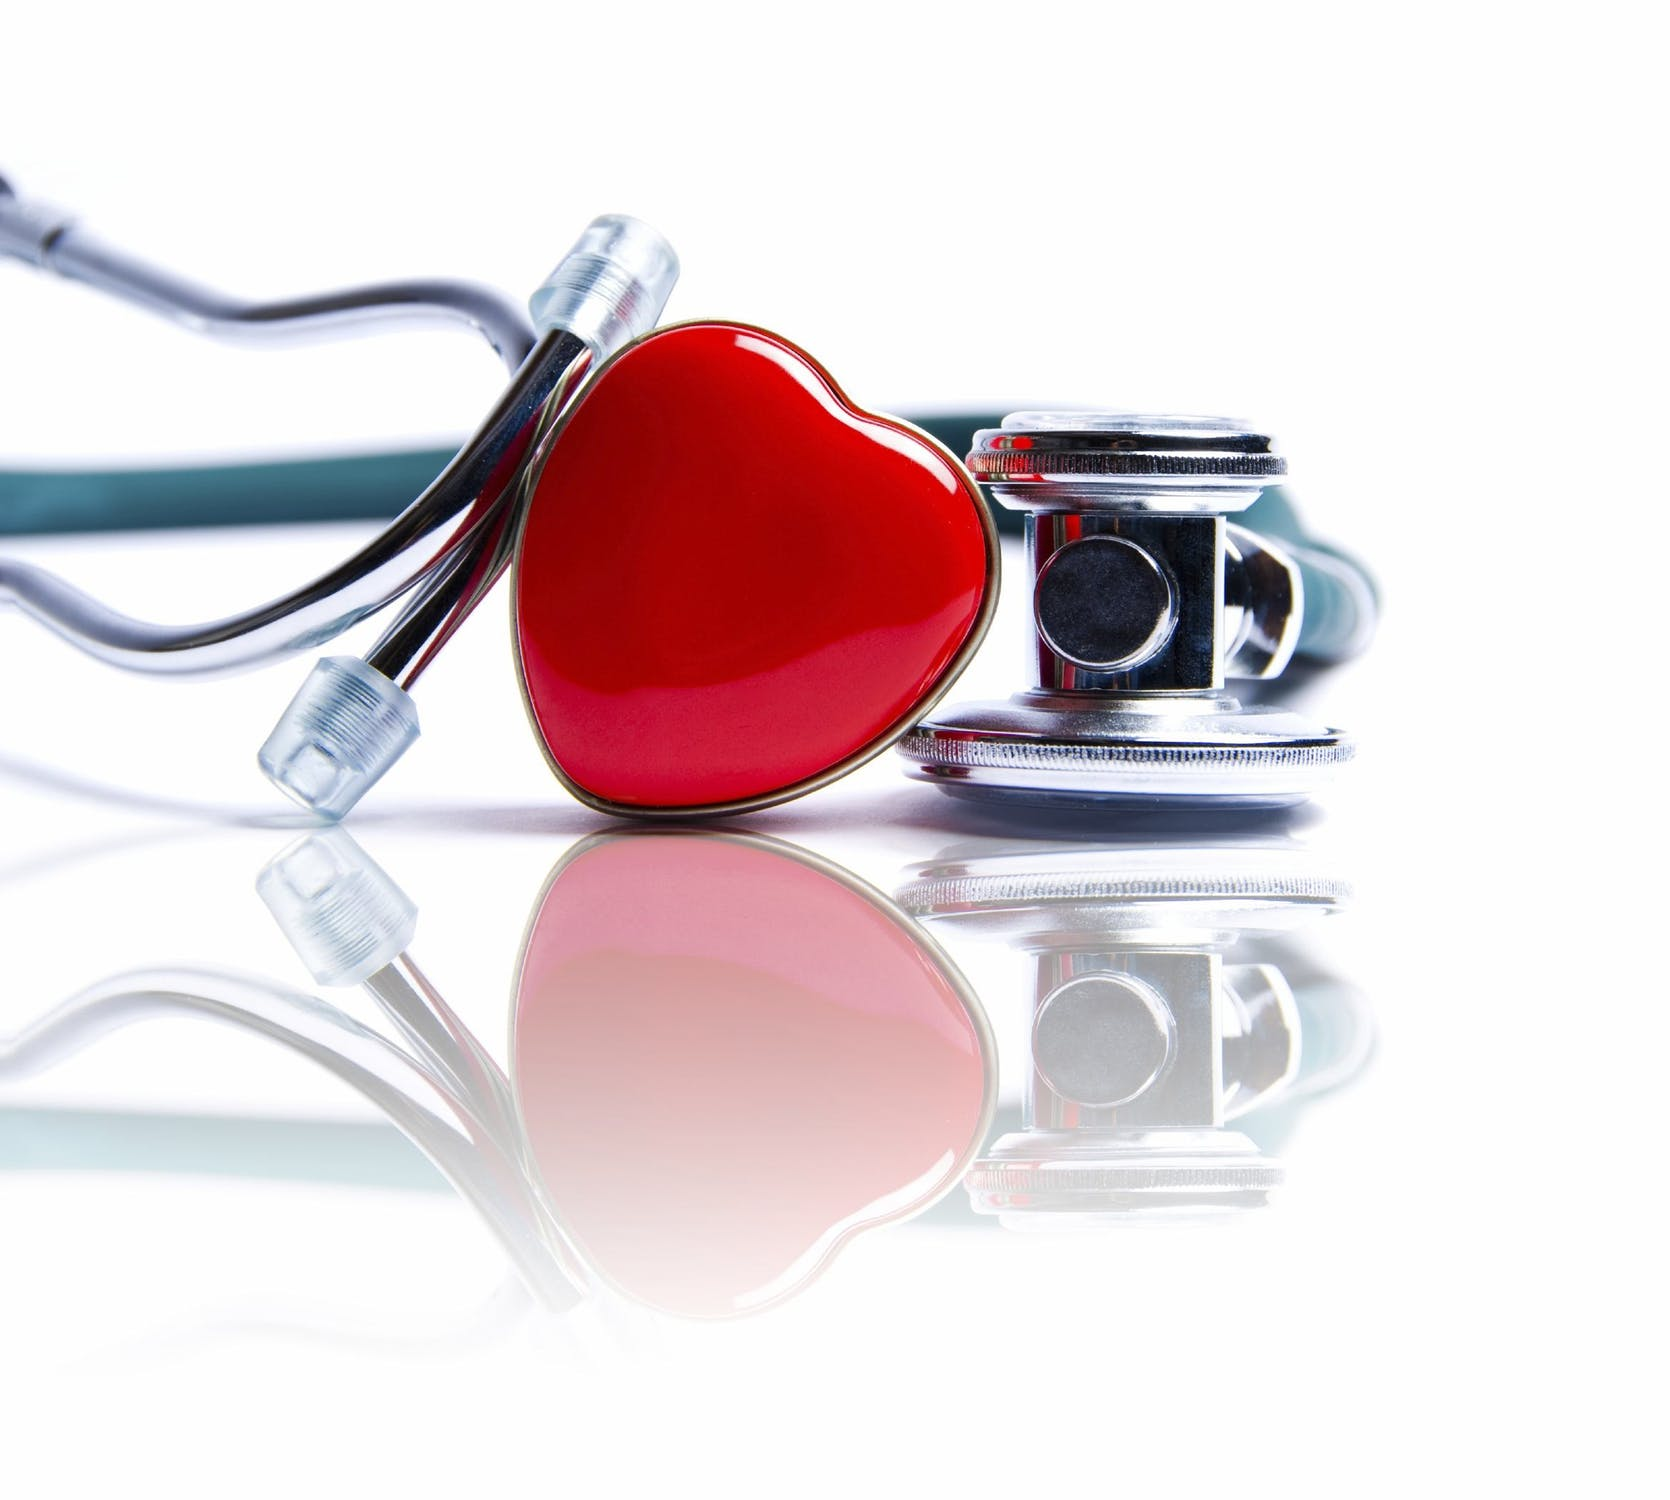 A red heart trinket next to silver stethoscope | OVitaminPro.com